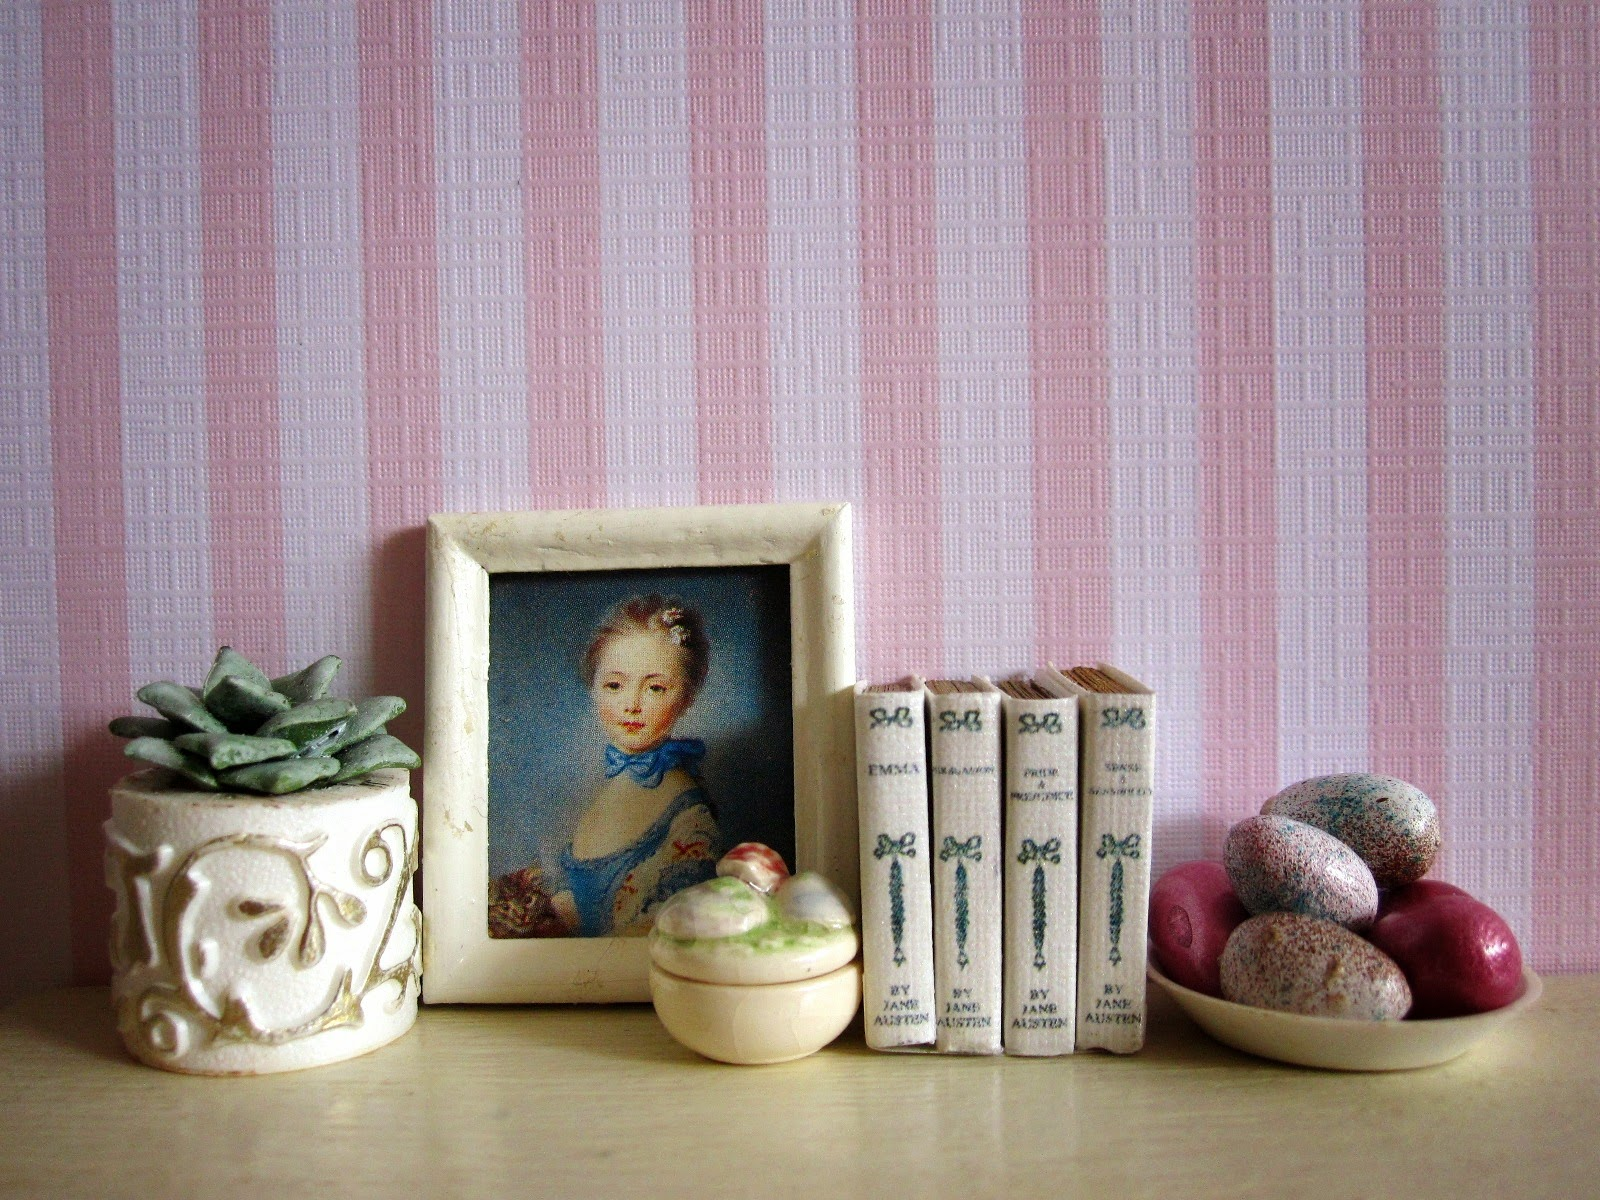 Modern miniature dolls' house scene with a white shelf in front of pink striped wallpaper. On the shelf is a succulent in a white and gold pot, a blue painting of a lady, a set of Jane Austen novels and a bowl of pink and white Easter eggs,